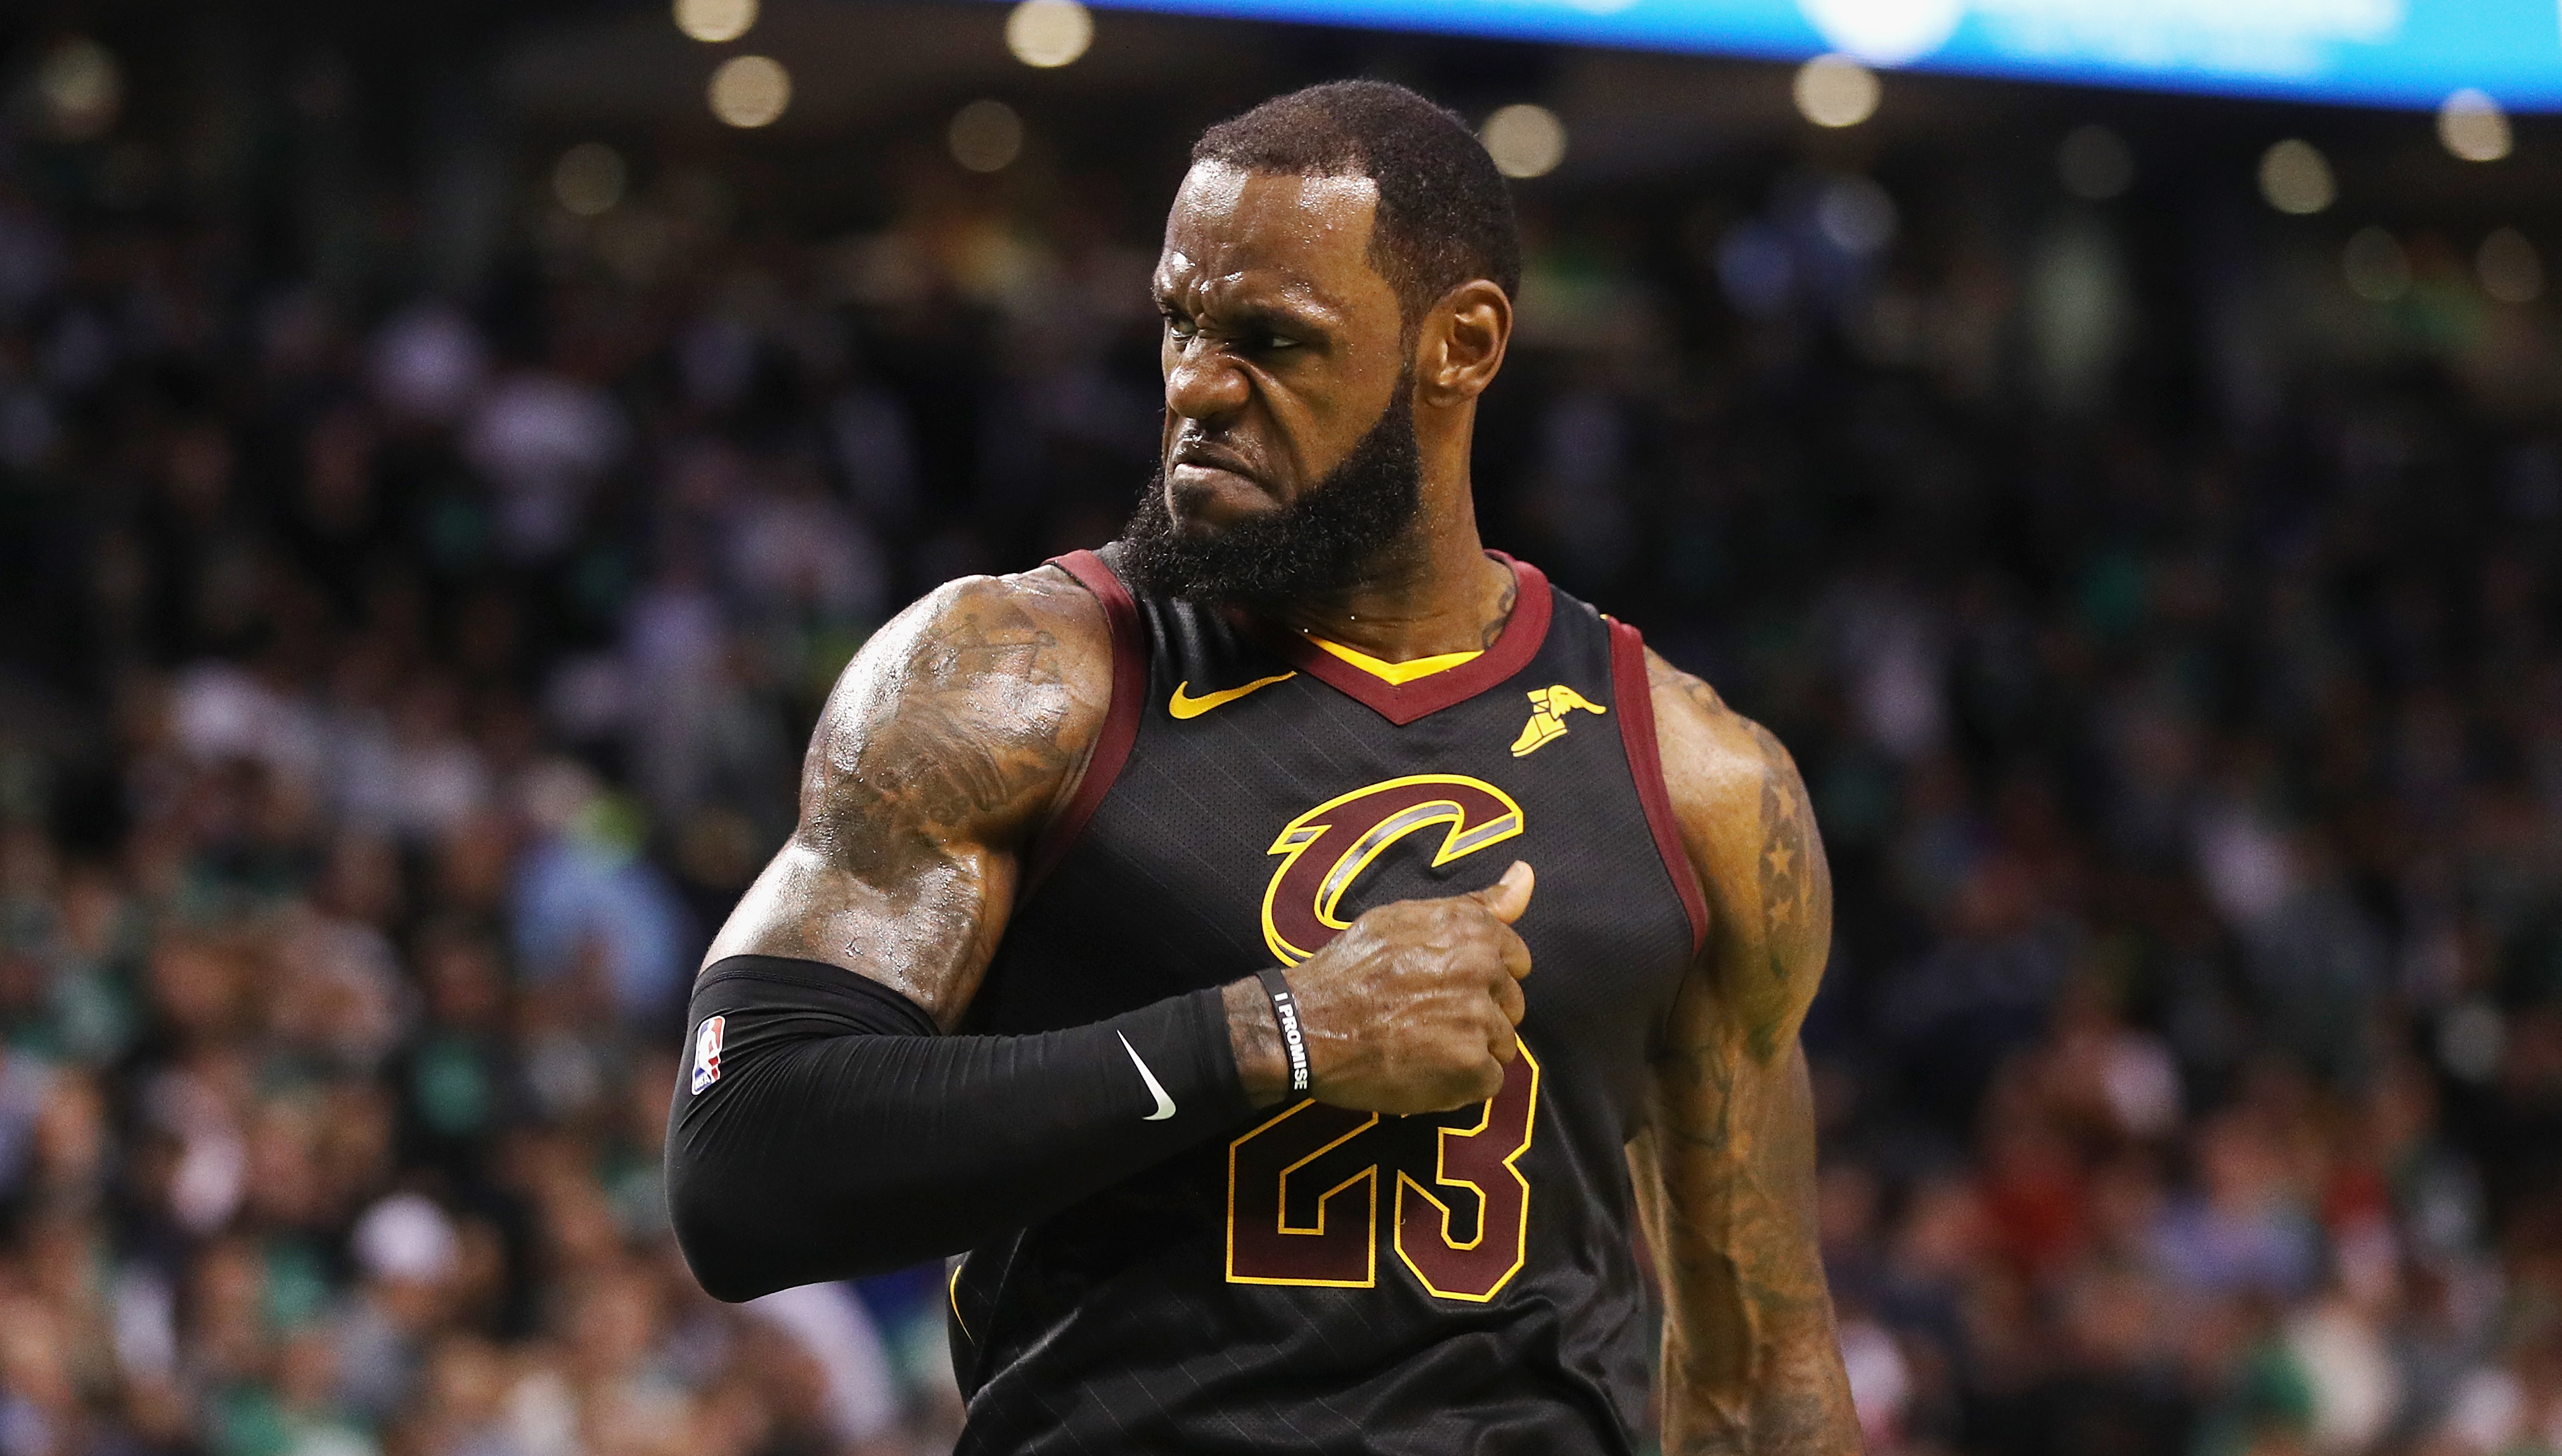 Does a Game 6 Loss Mean LeBron Is Done in Cleveland?